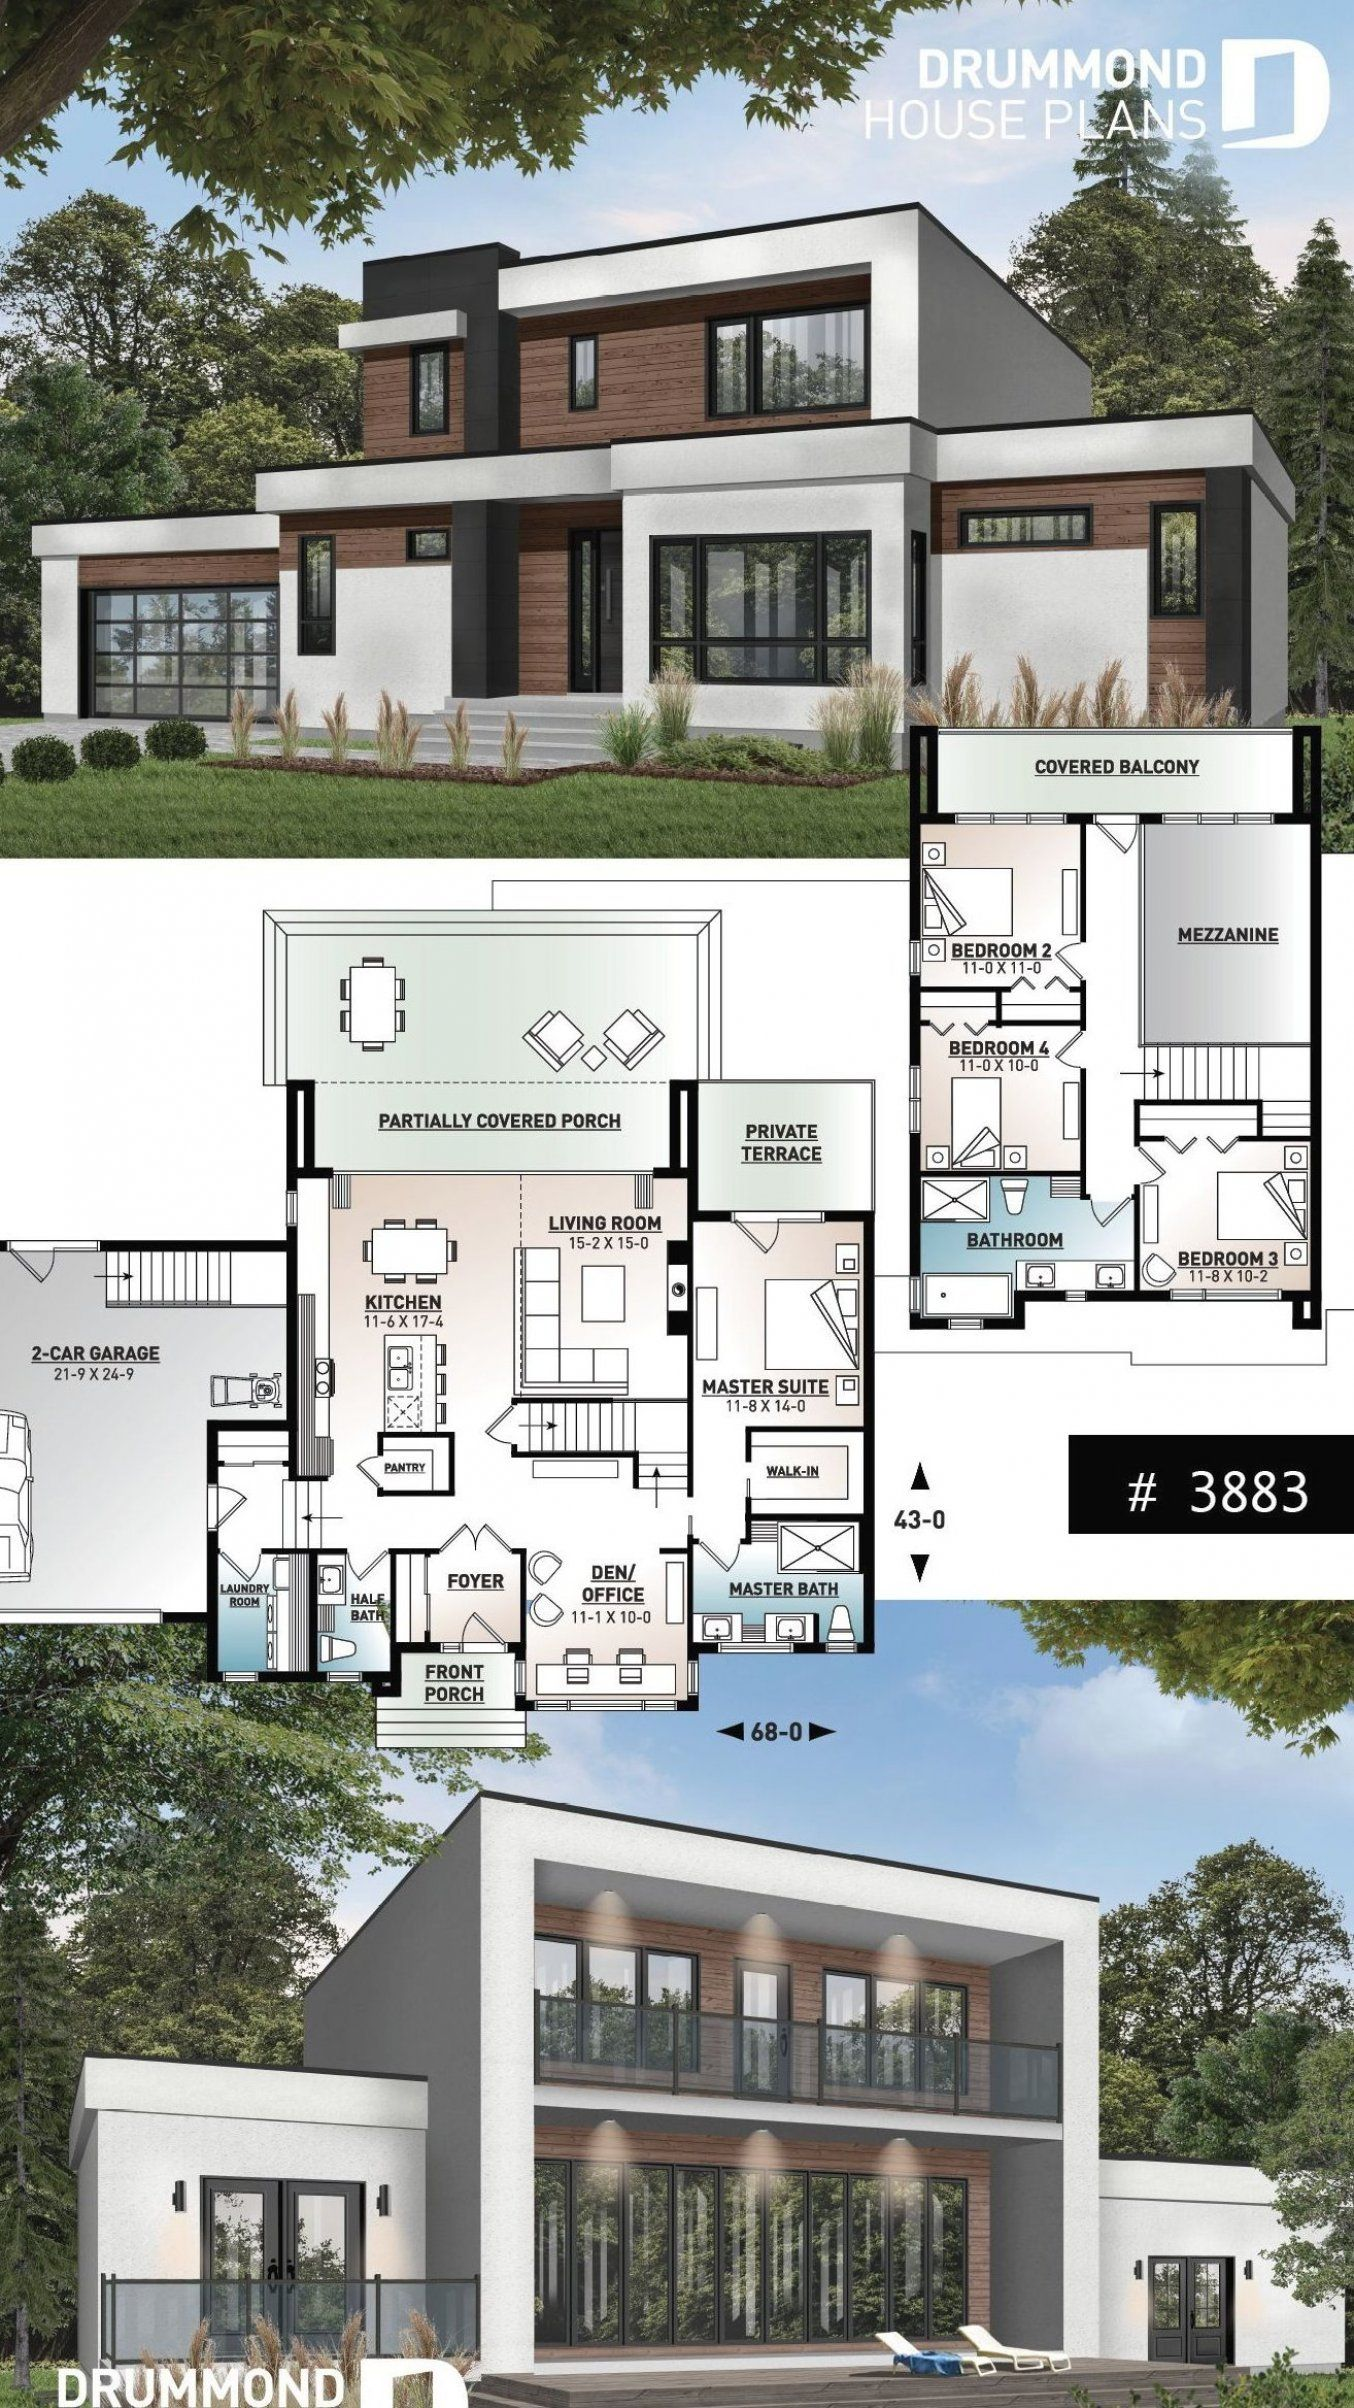 Modern Cube Shaped House Plan Master Suite 4 Bedrooms Open Floor Plan Home Office 2 Car Garage Pa Sims House Plans House Blueprints Craftsman House Plans